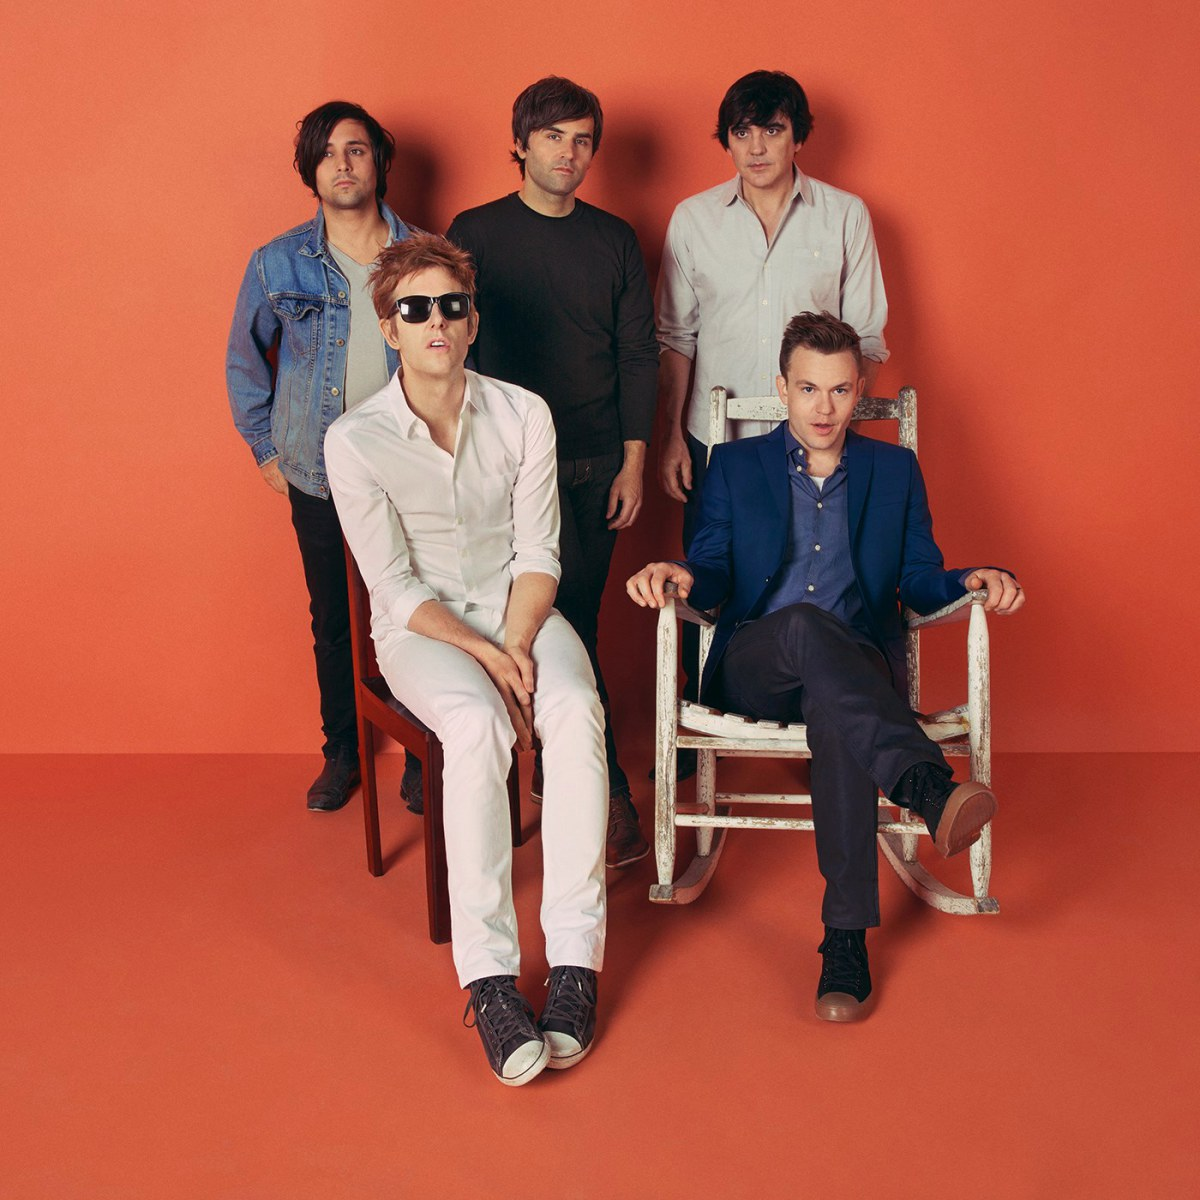 Spoon band